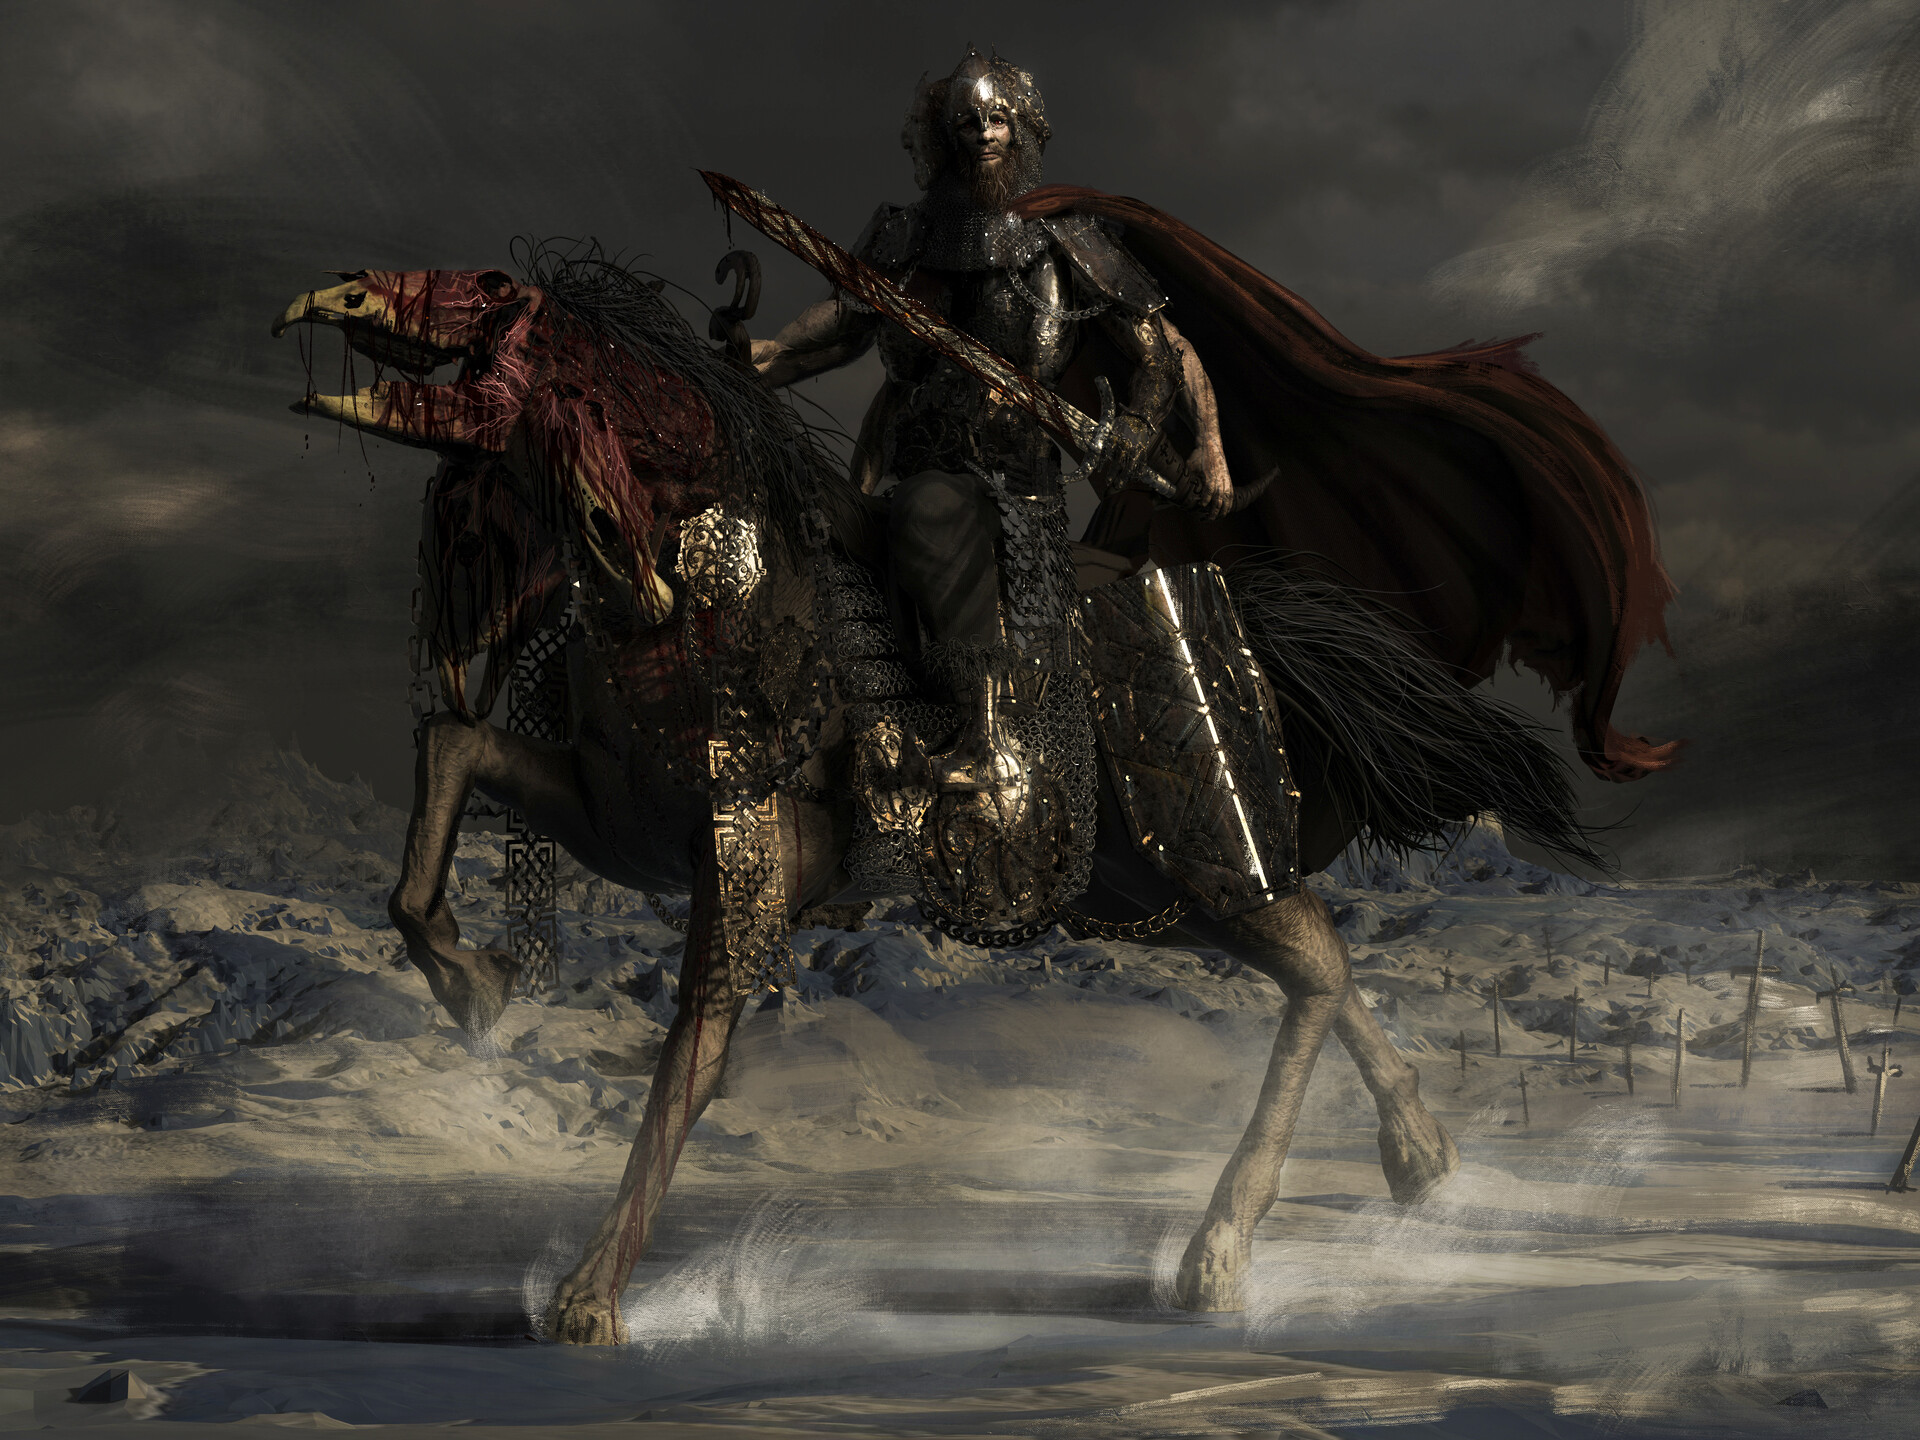 Elden Ring announced (FromSoftware's largest game to date ...